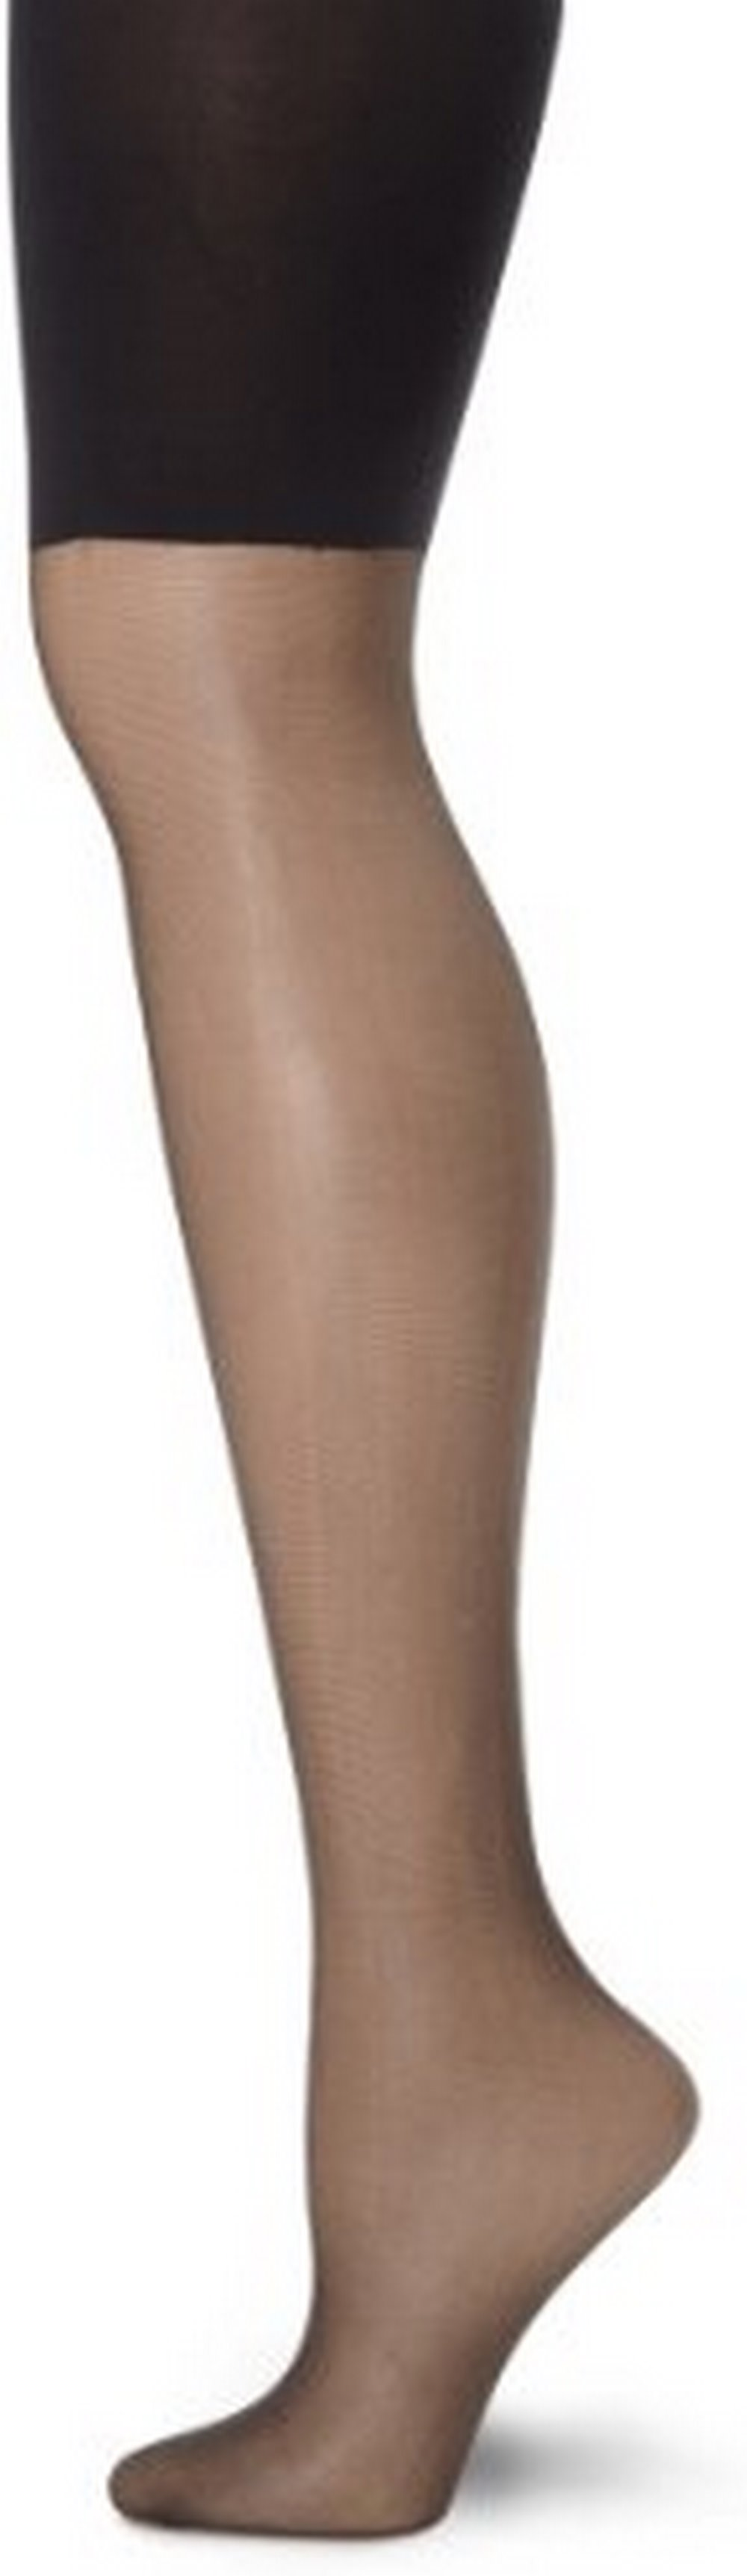 699bfeefb4 L eggs - L`eggs Profiles Women`s Moderate Control Mid-Thigh Toner Silky  Sheer Pantyhose